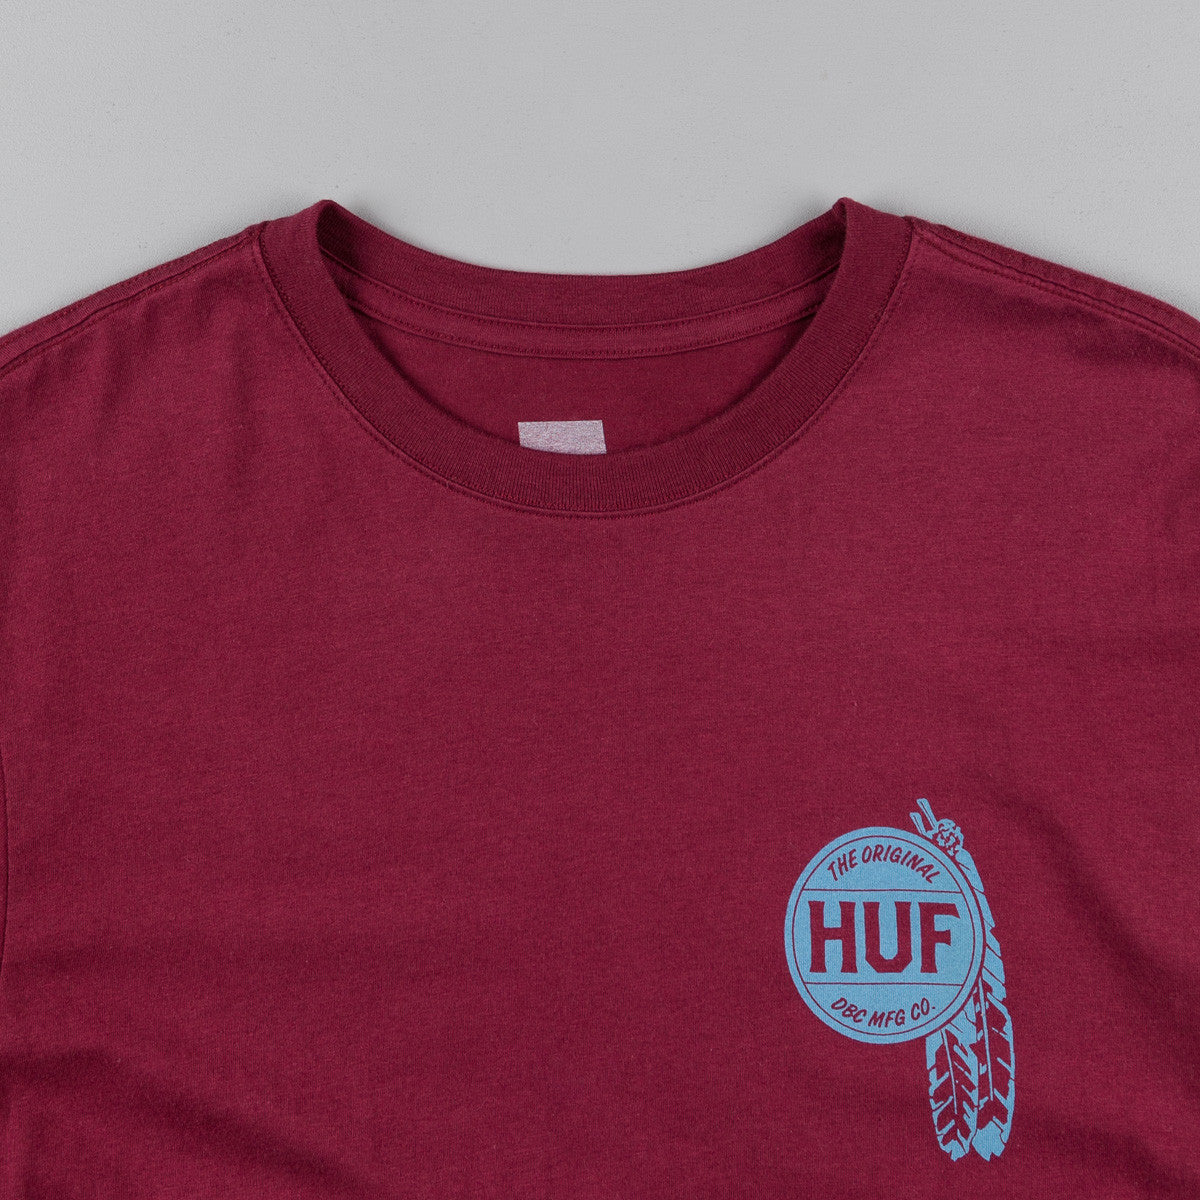 HUF Native T-Shirt - Burgundy